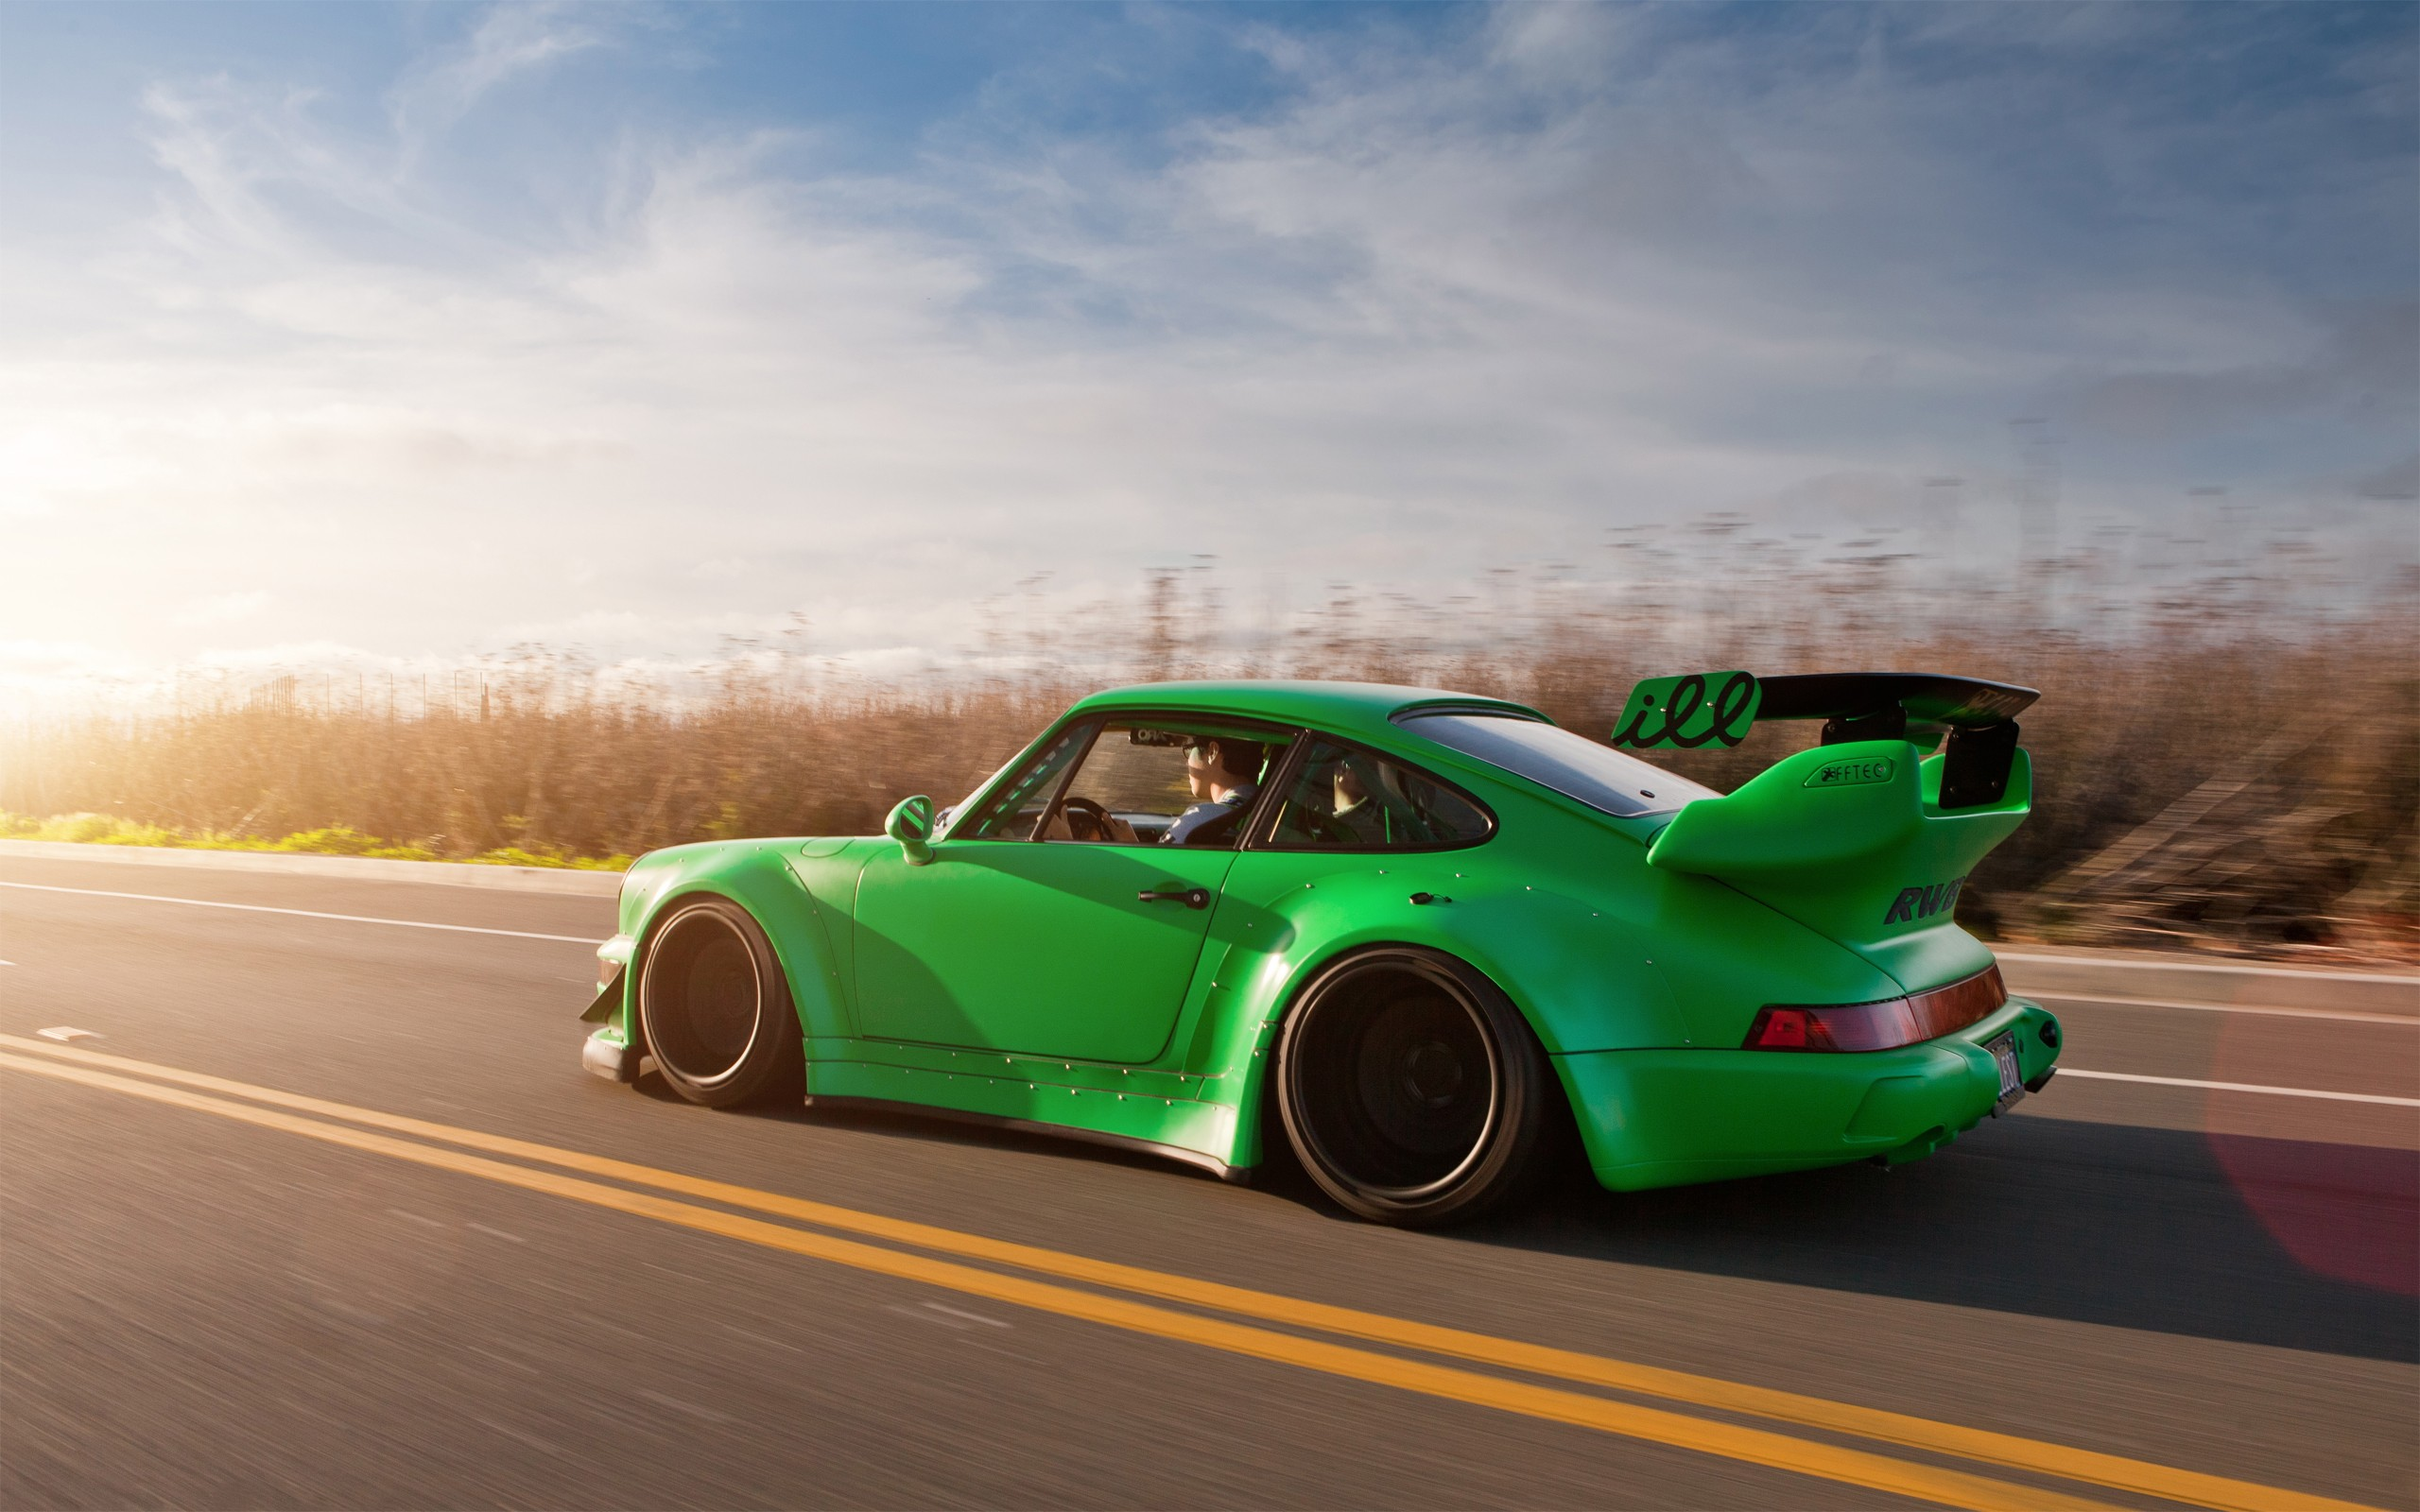 Rwb 4k Wallpaper: The Best Automotive Photos In HD Pt. 7 [17 Pics]